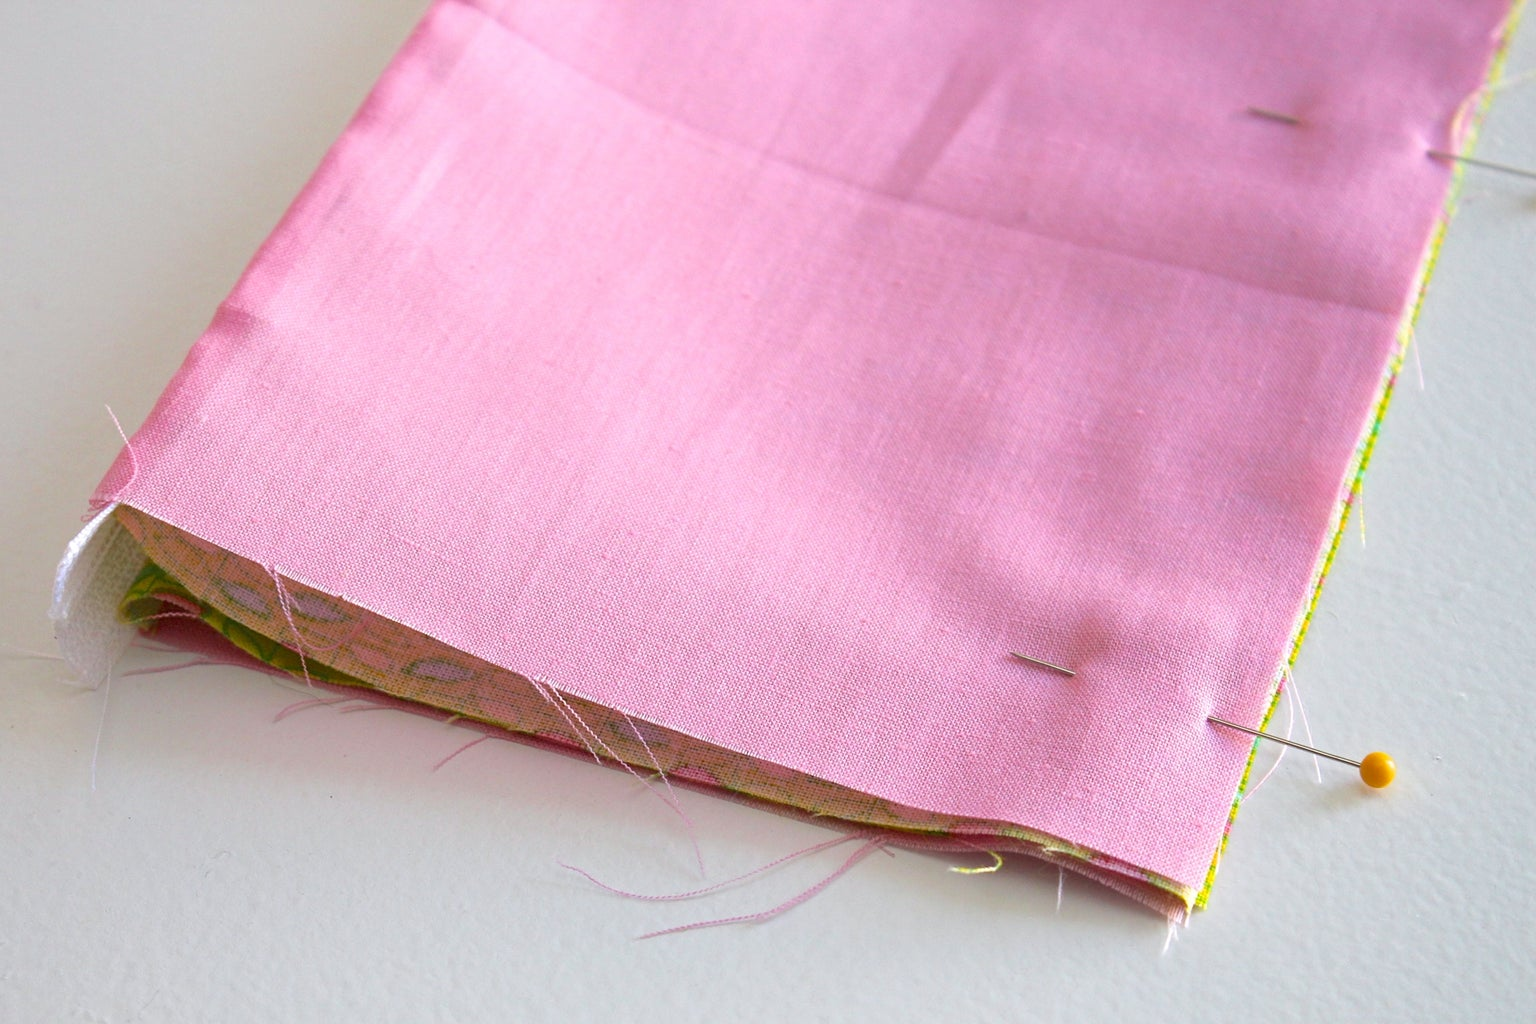 Sew the Bottom of the Pouch Together